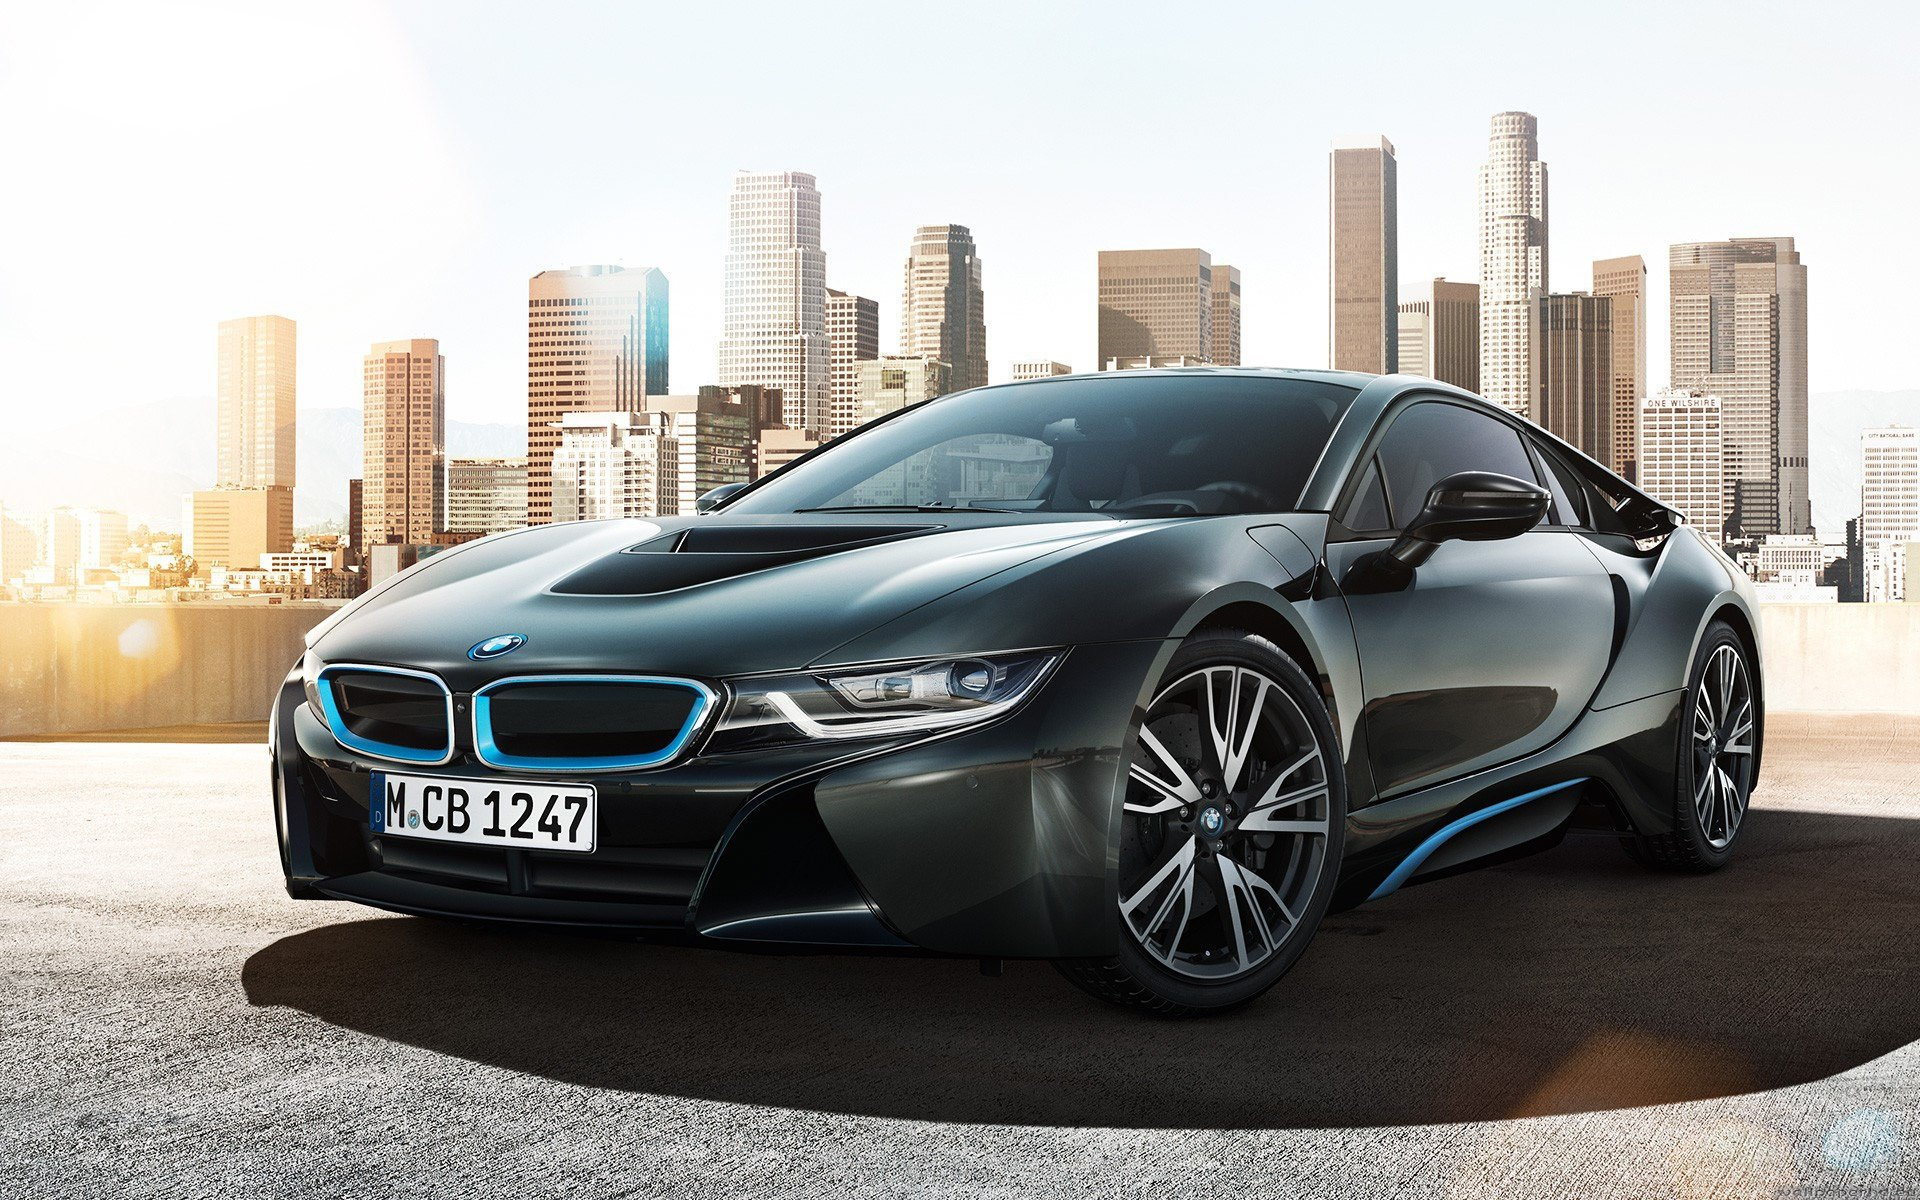 Free Download Bmw I8 Background Id 126903 Hd 1920x1200 For Desktop